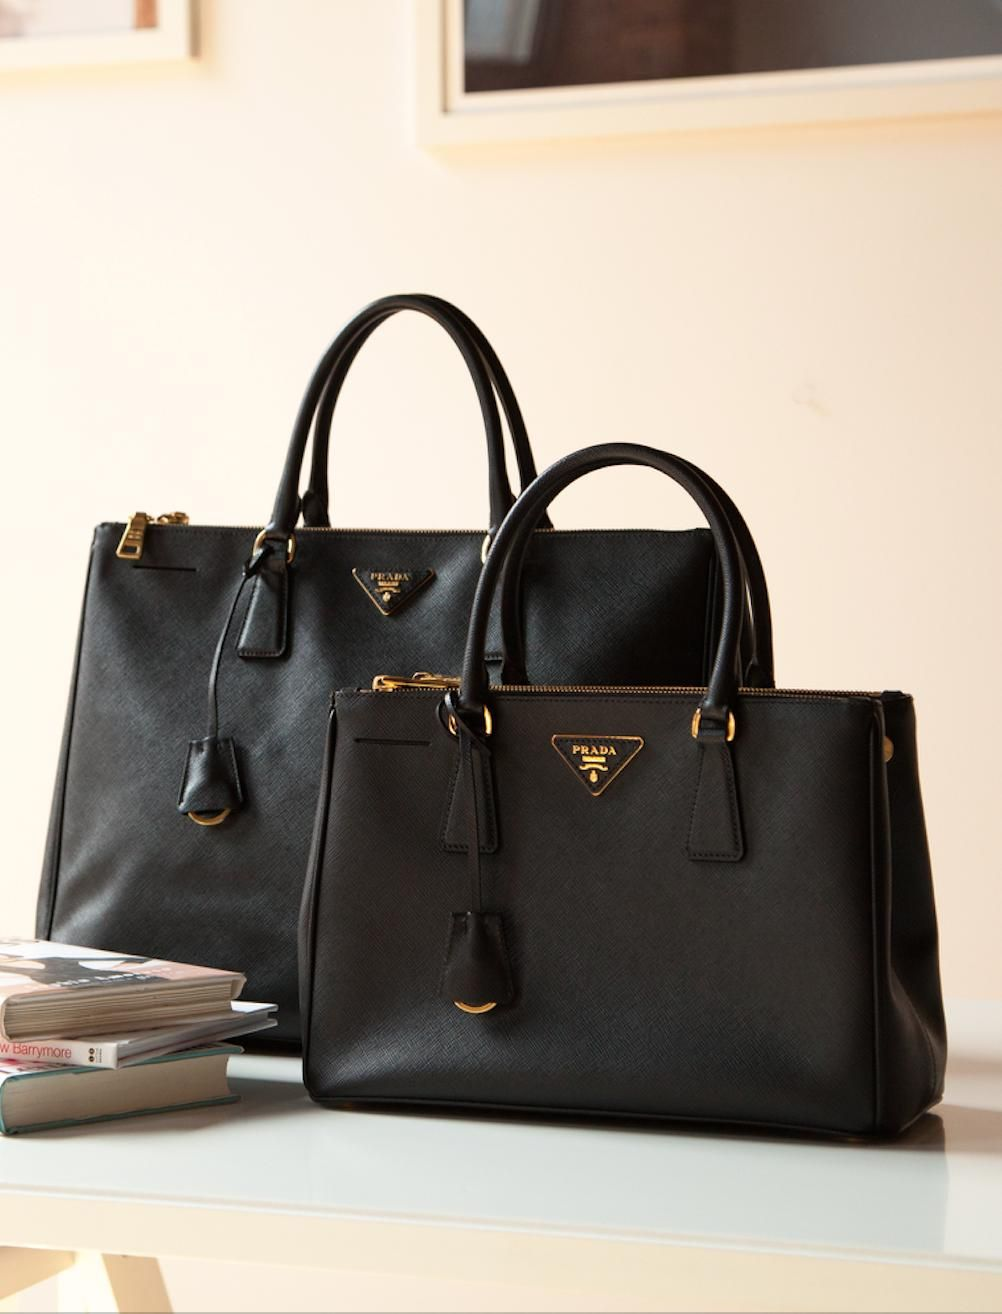 4bf67614cc0d where are prada handbags made. Large and small black Prada tote in saffiano  leather.